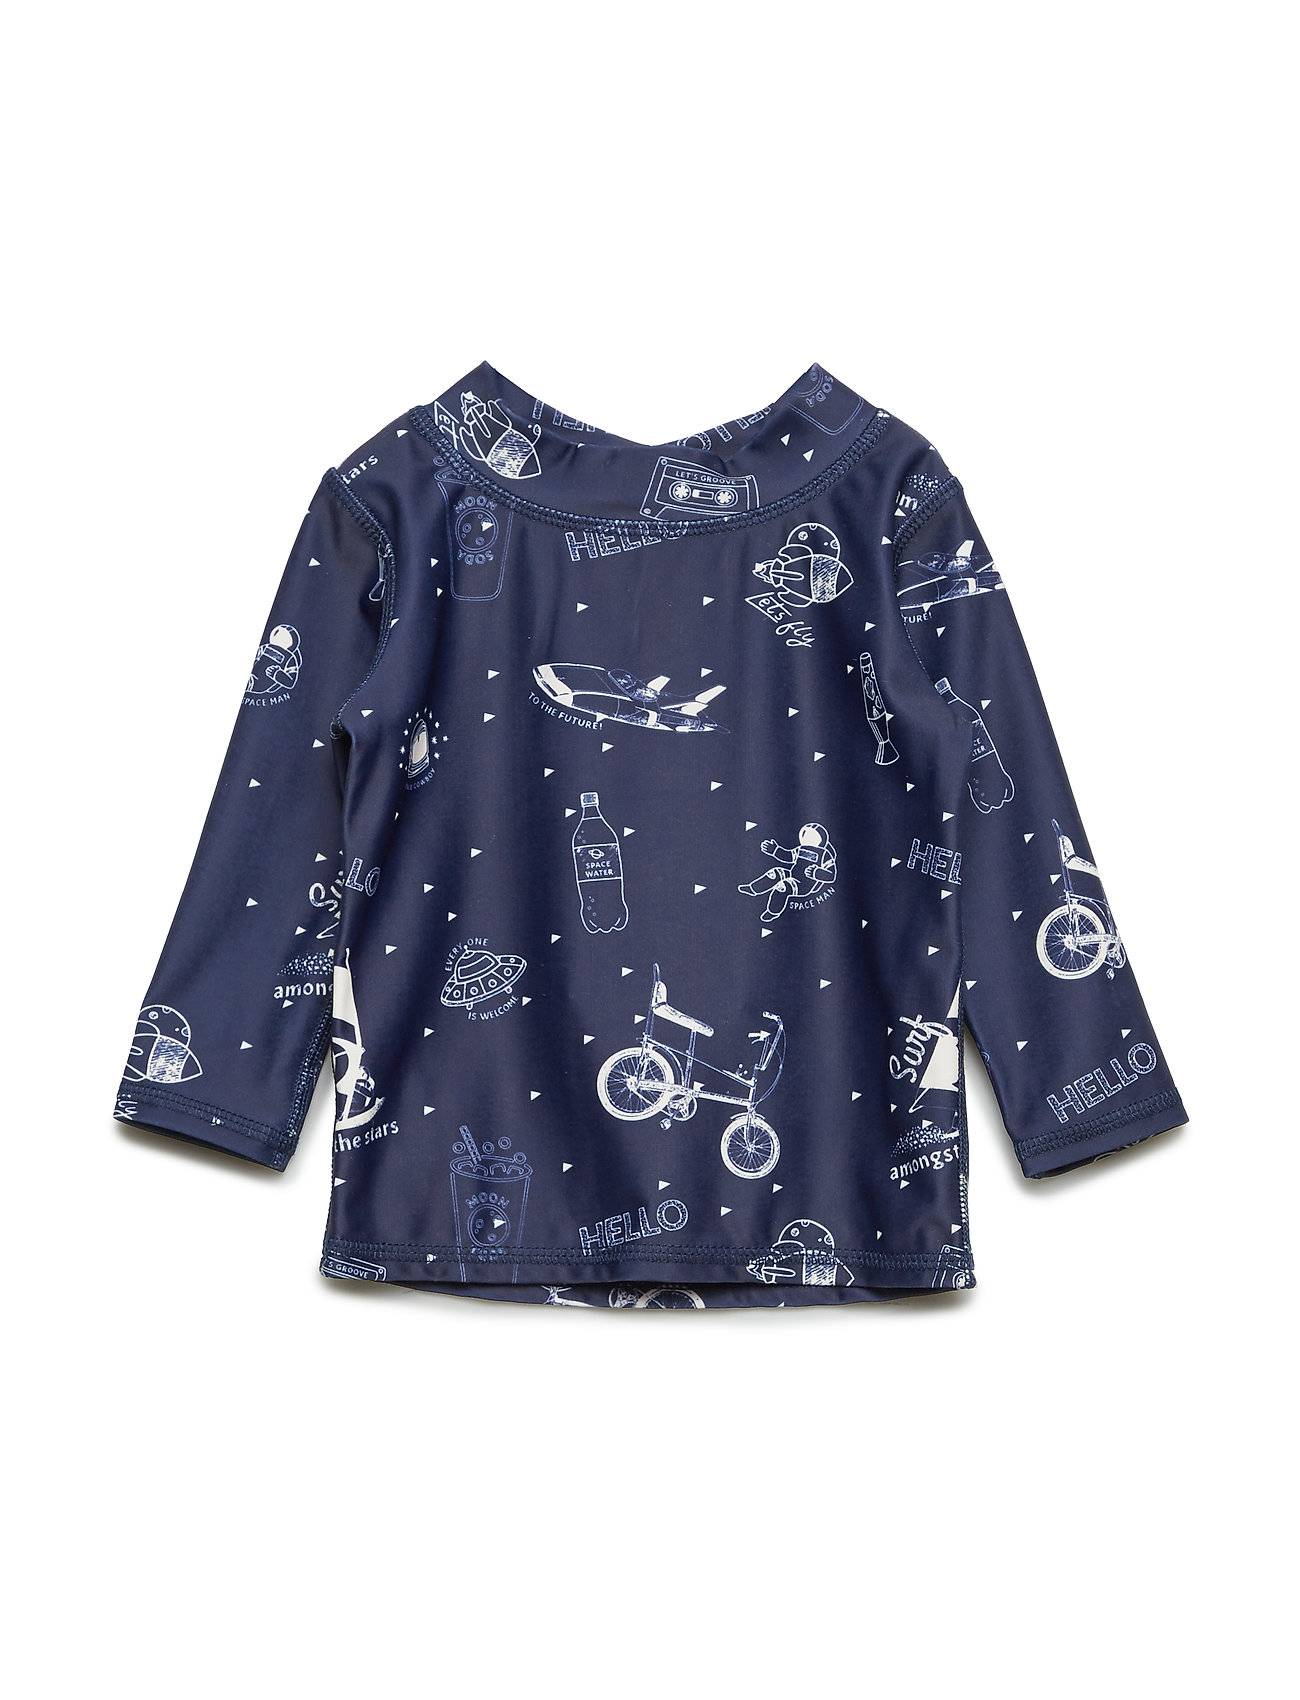 Image of Soft Gallery Baby Astin Sun Shirt Swimwear UV Clothing UV Tops Sininen Soft Gallery